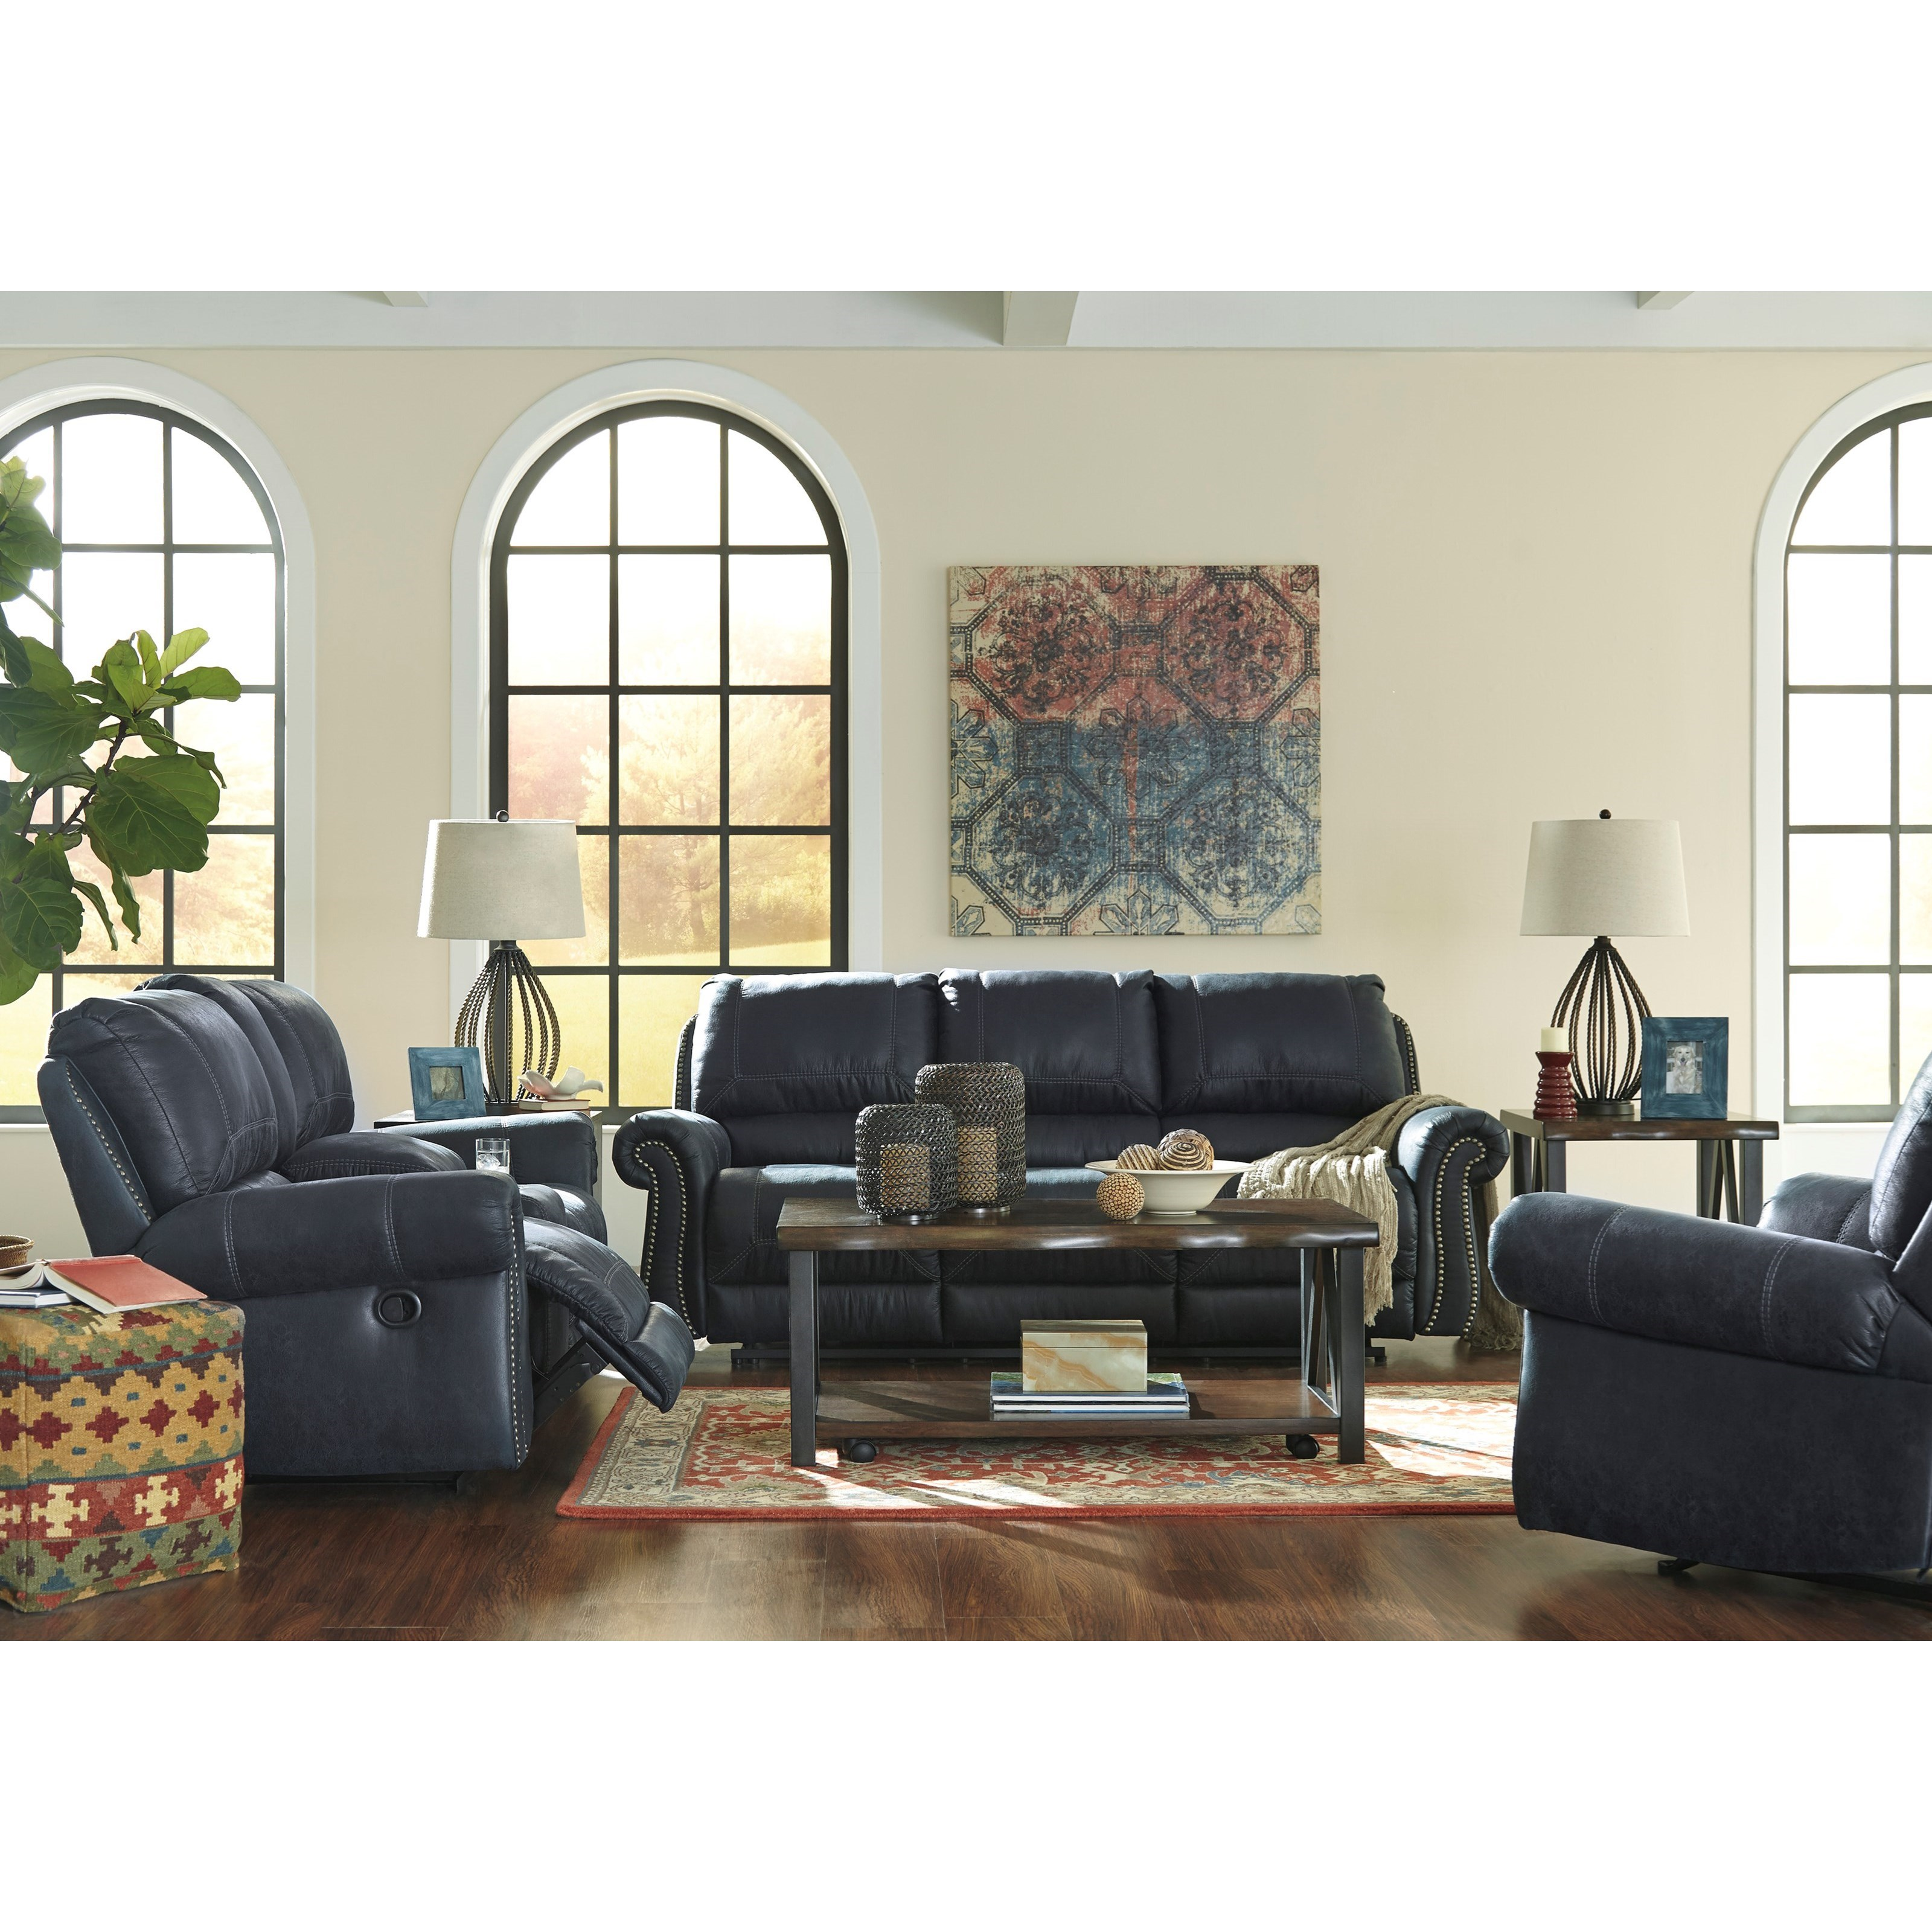 Signature Design by Ashley Milhaven Reclining Living Room Group - Item Number: 63304 Living Room Group 3